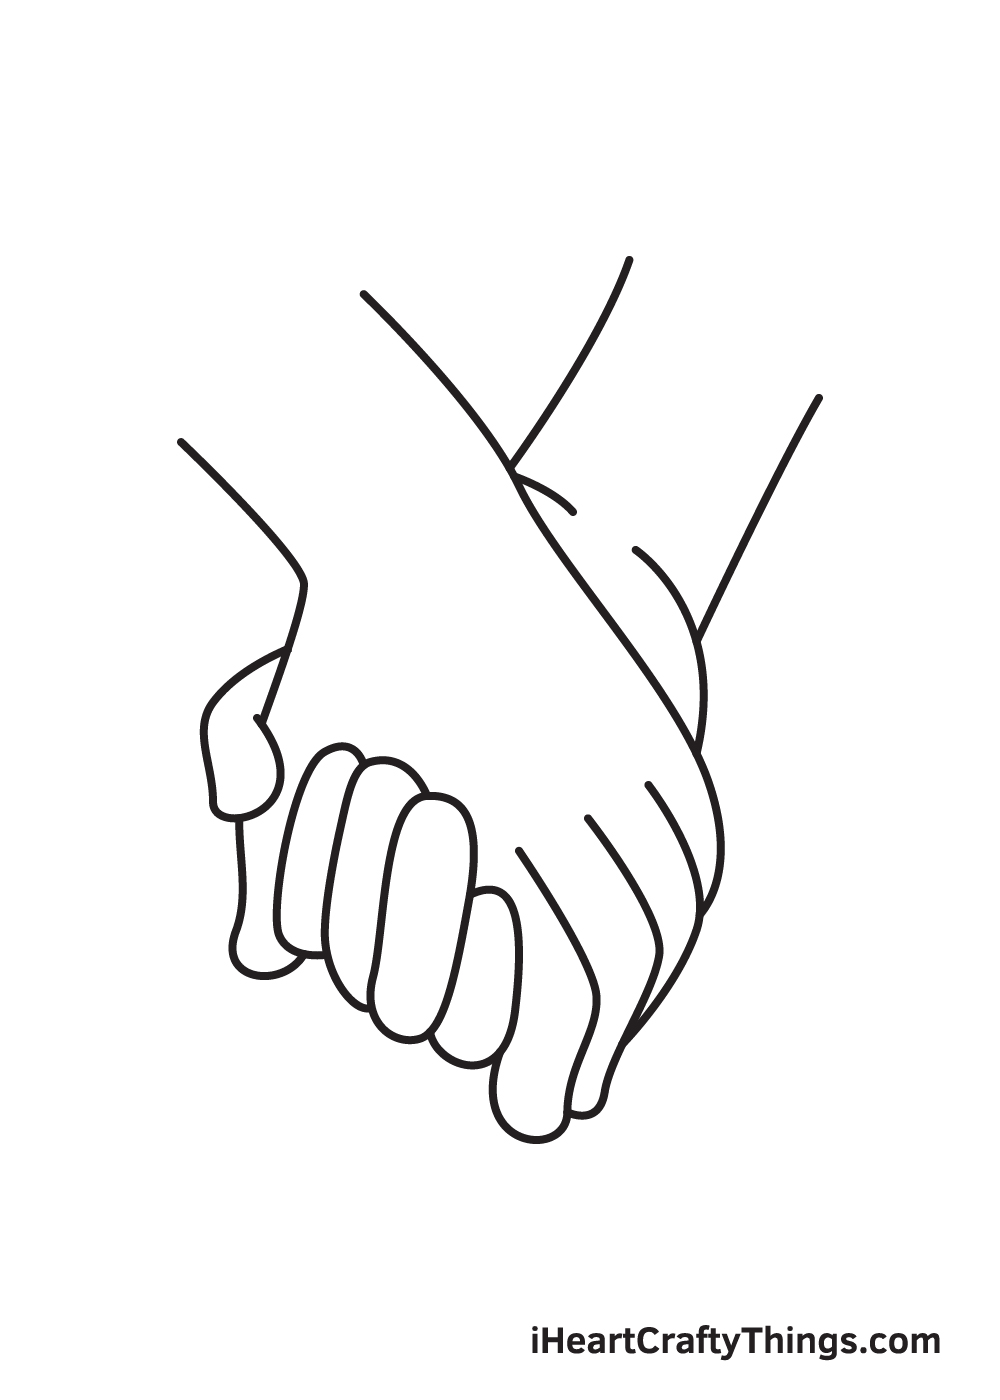 holding hands drawing step 8